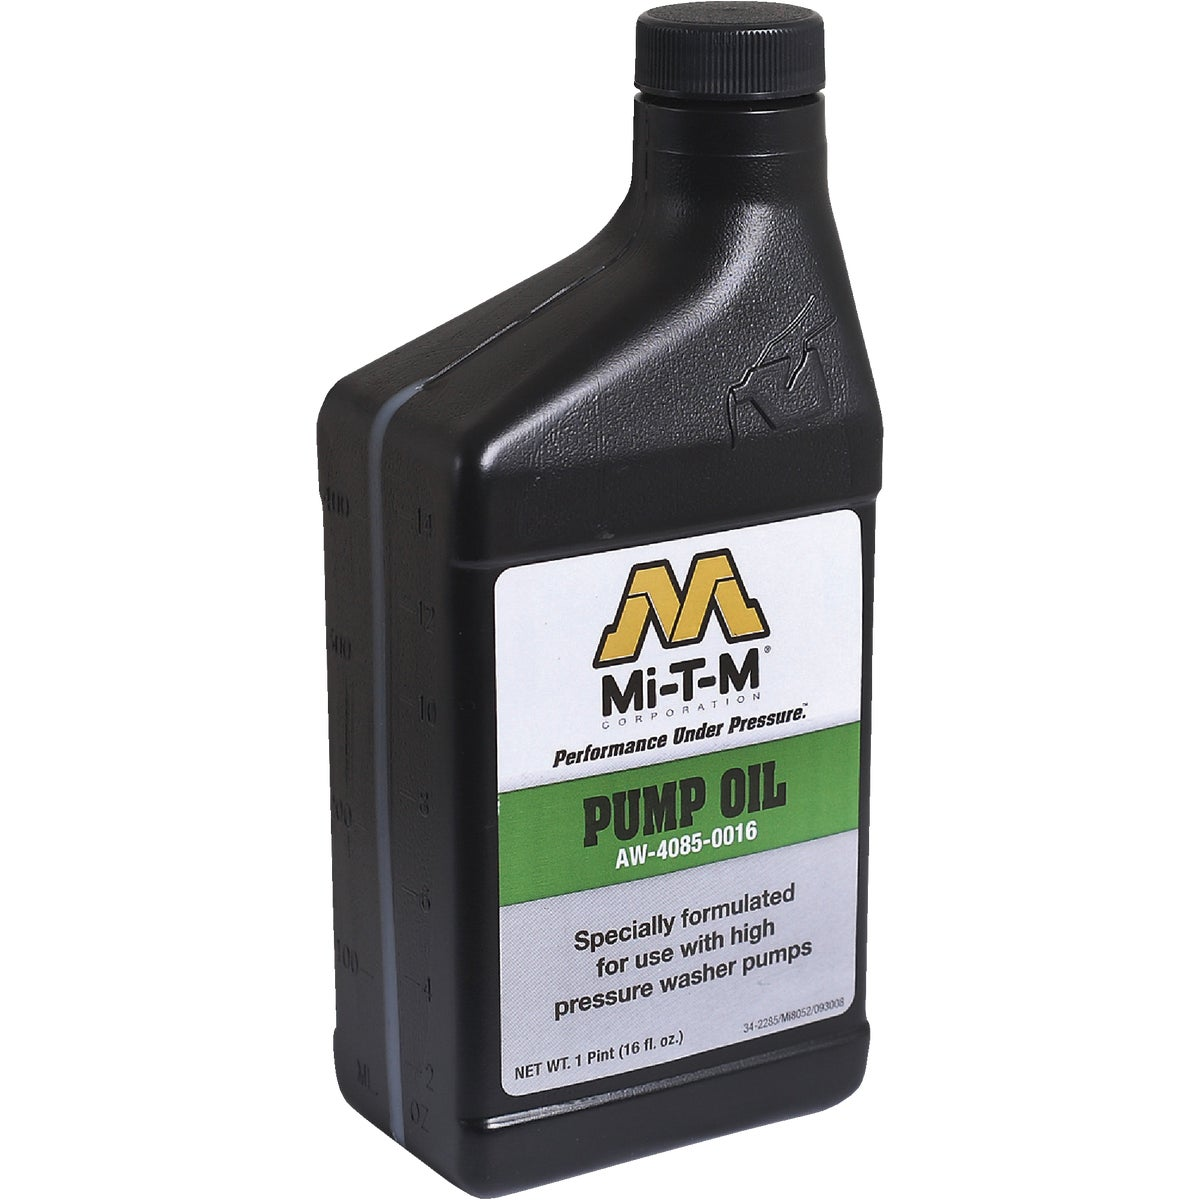 PINT PUMP OIL - AW-4085-0016 by Mi T M Corp